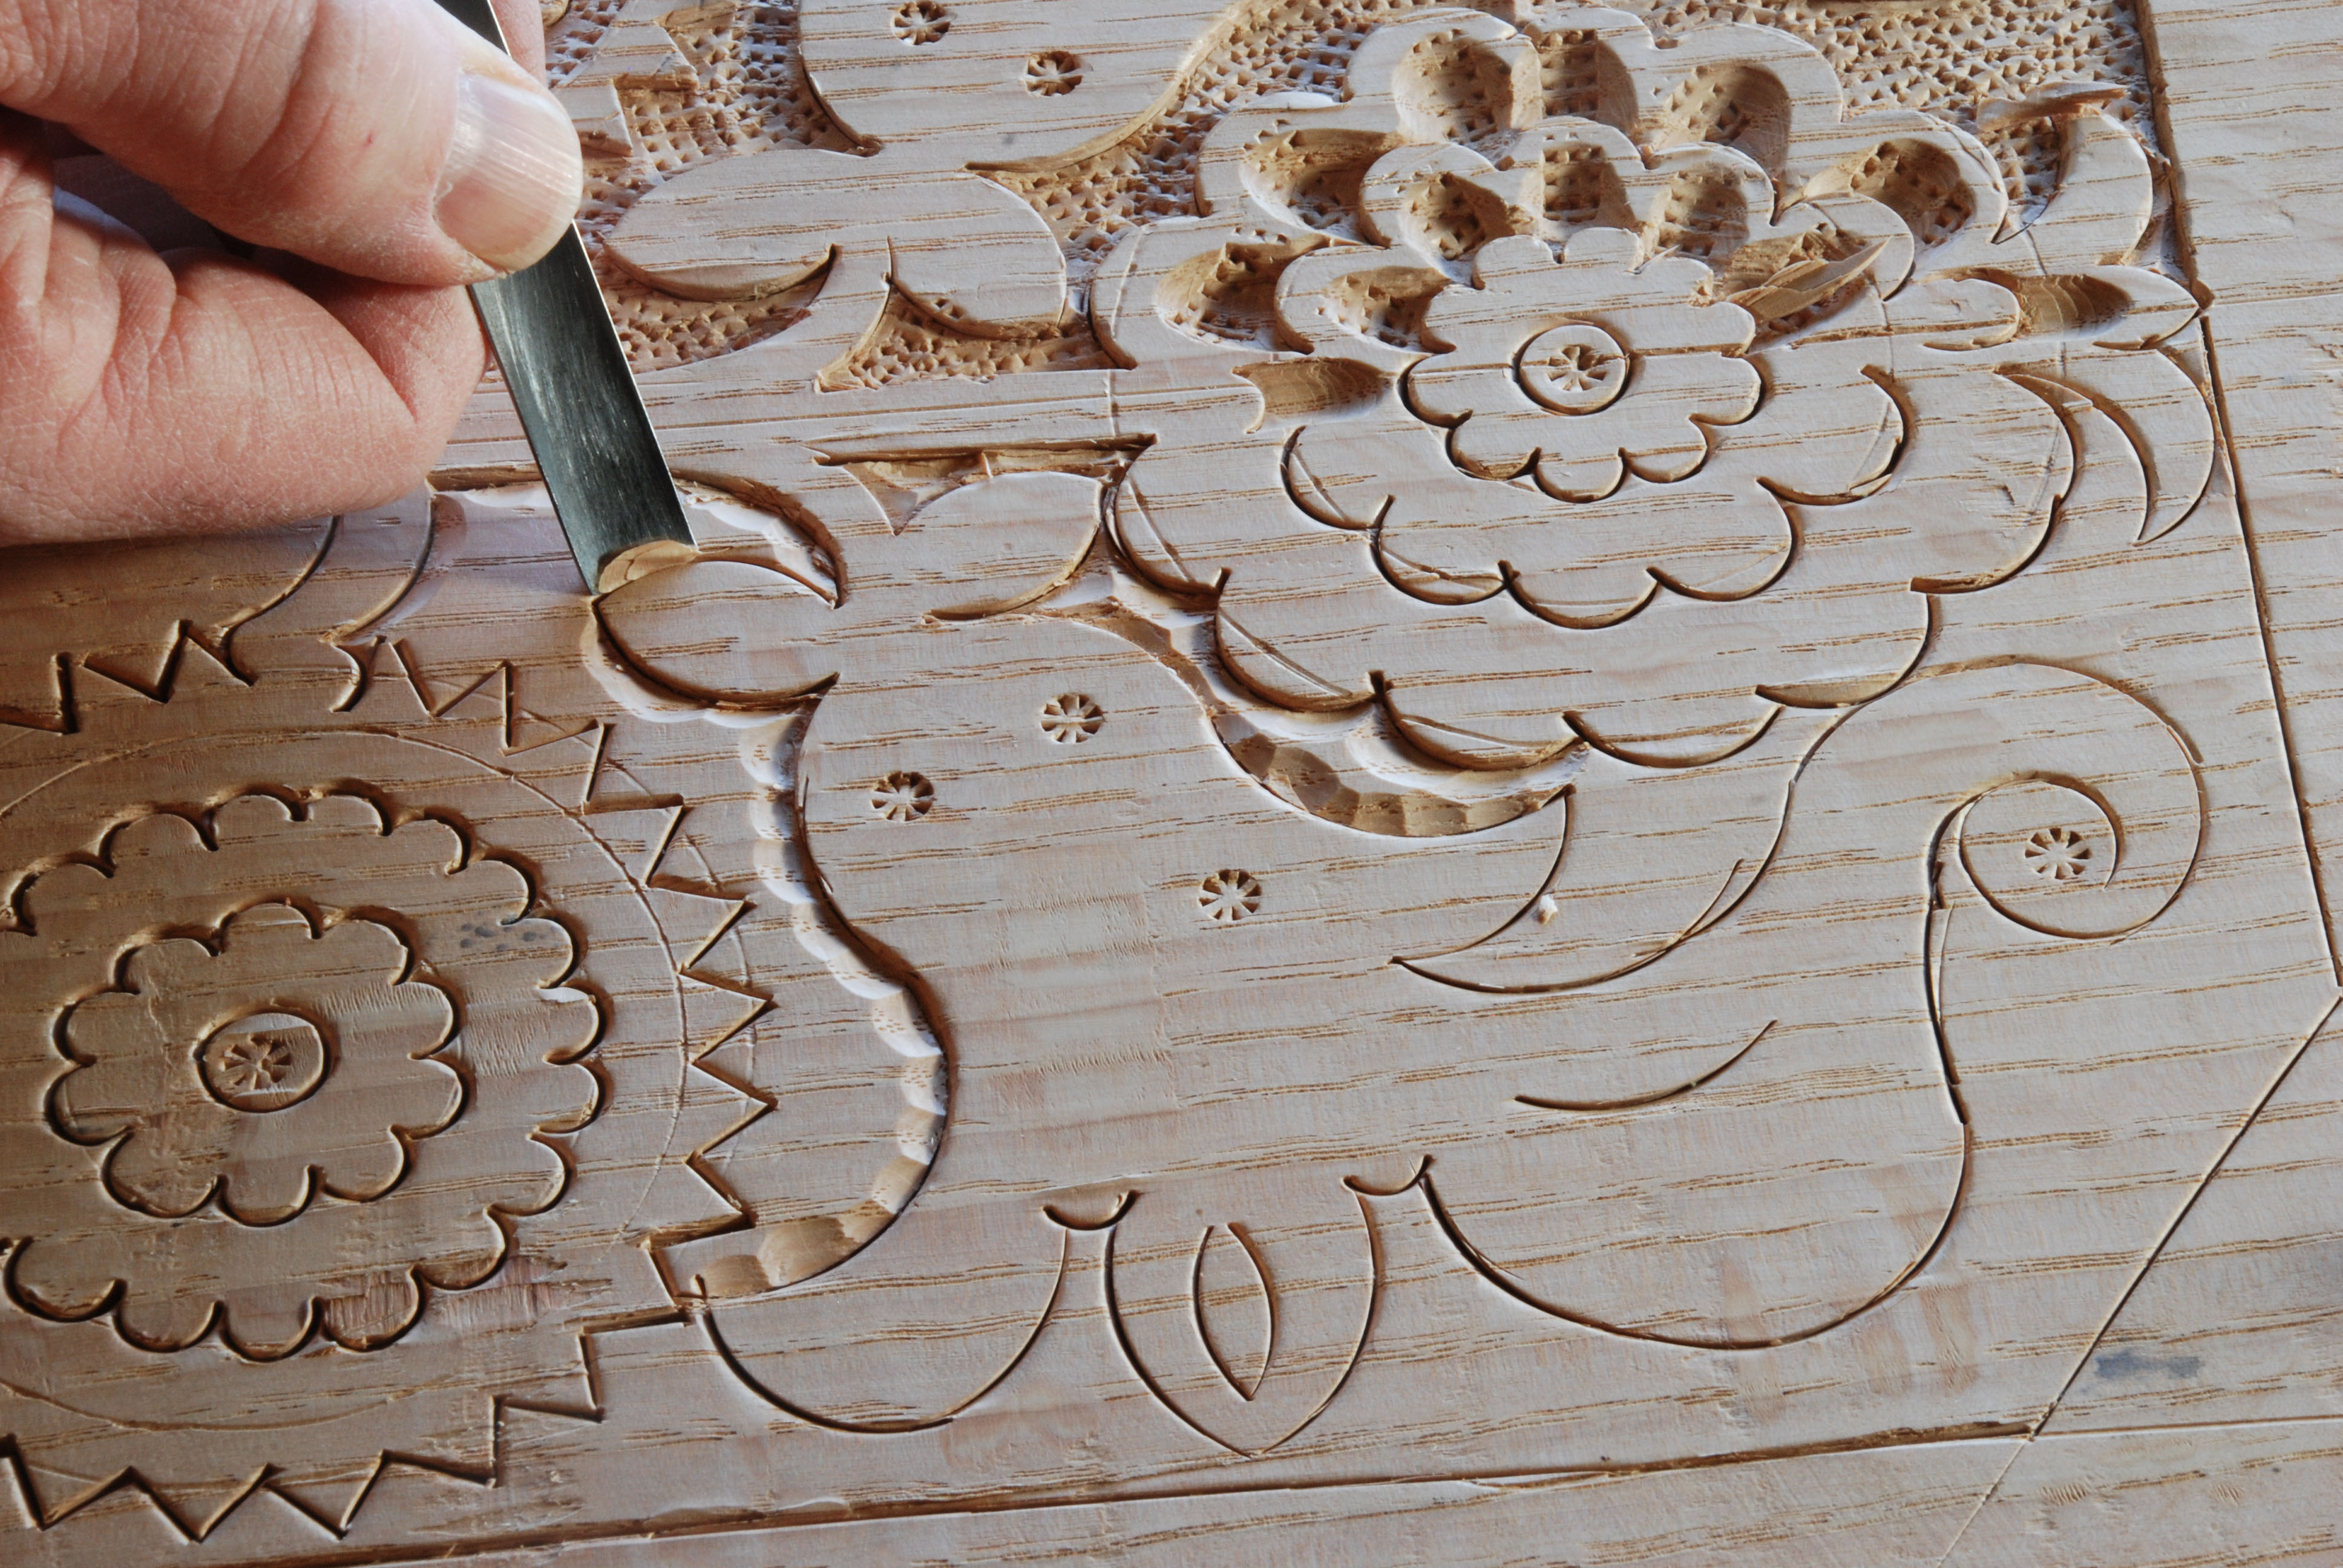 Wood Carving Patterns On Pinterest Wood Carving Tools | Review Ebooks